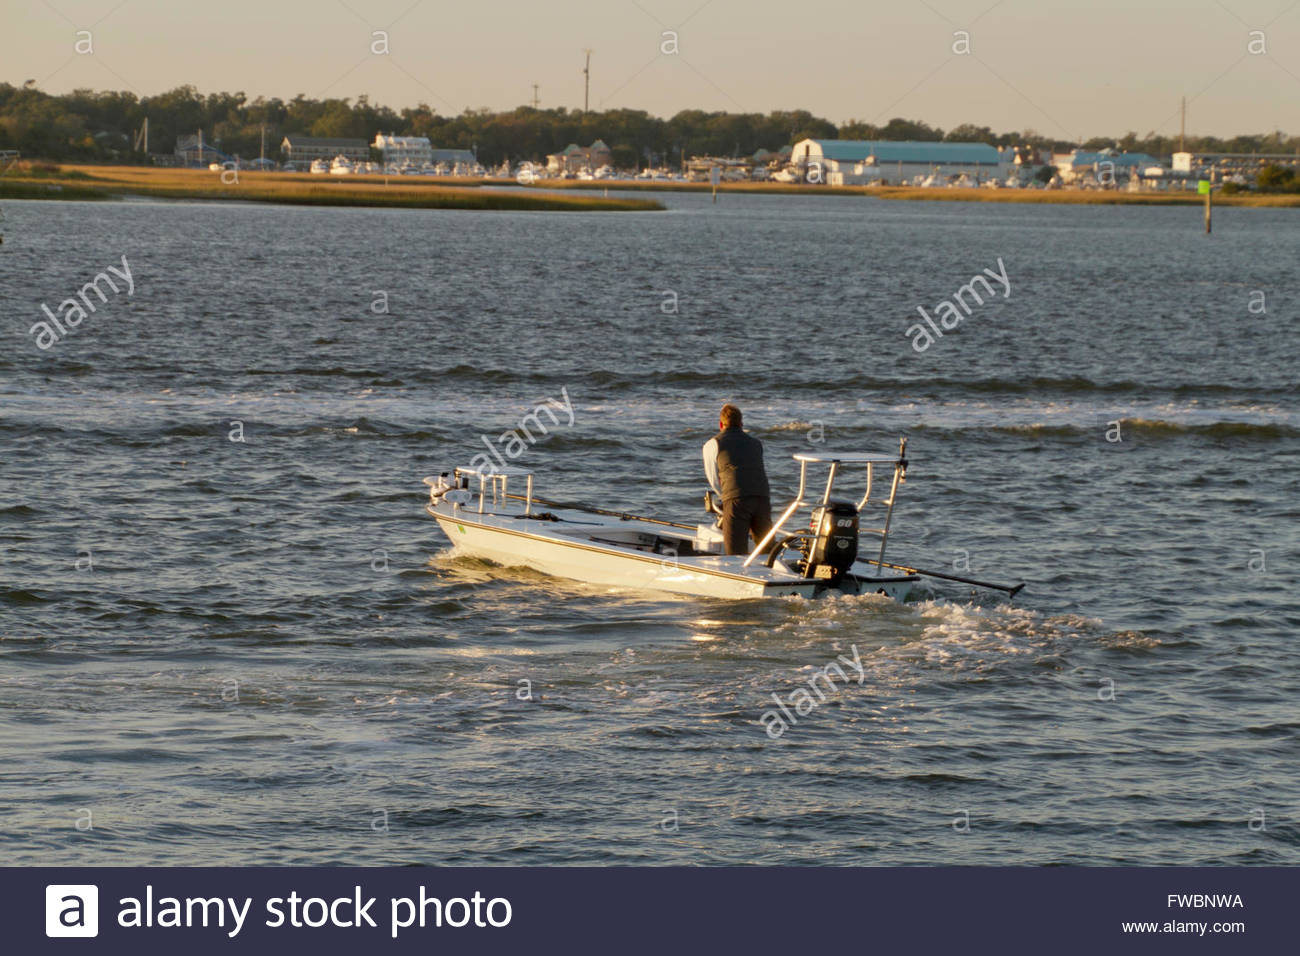 Atlantic intracoastal waterway wrightsville beach north carolina atlantic intracoastal waterway wrightsville beach north carolina usa november 13 2015 a man takes off in a speedboat nea publicscrutiny Images